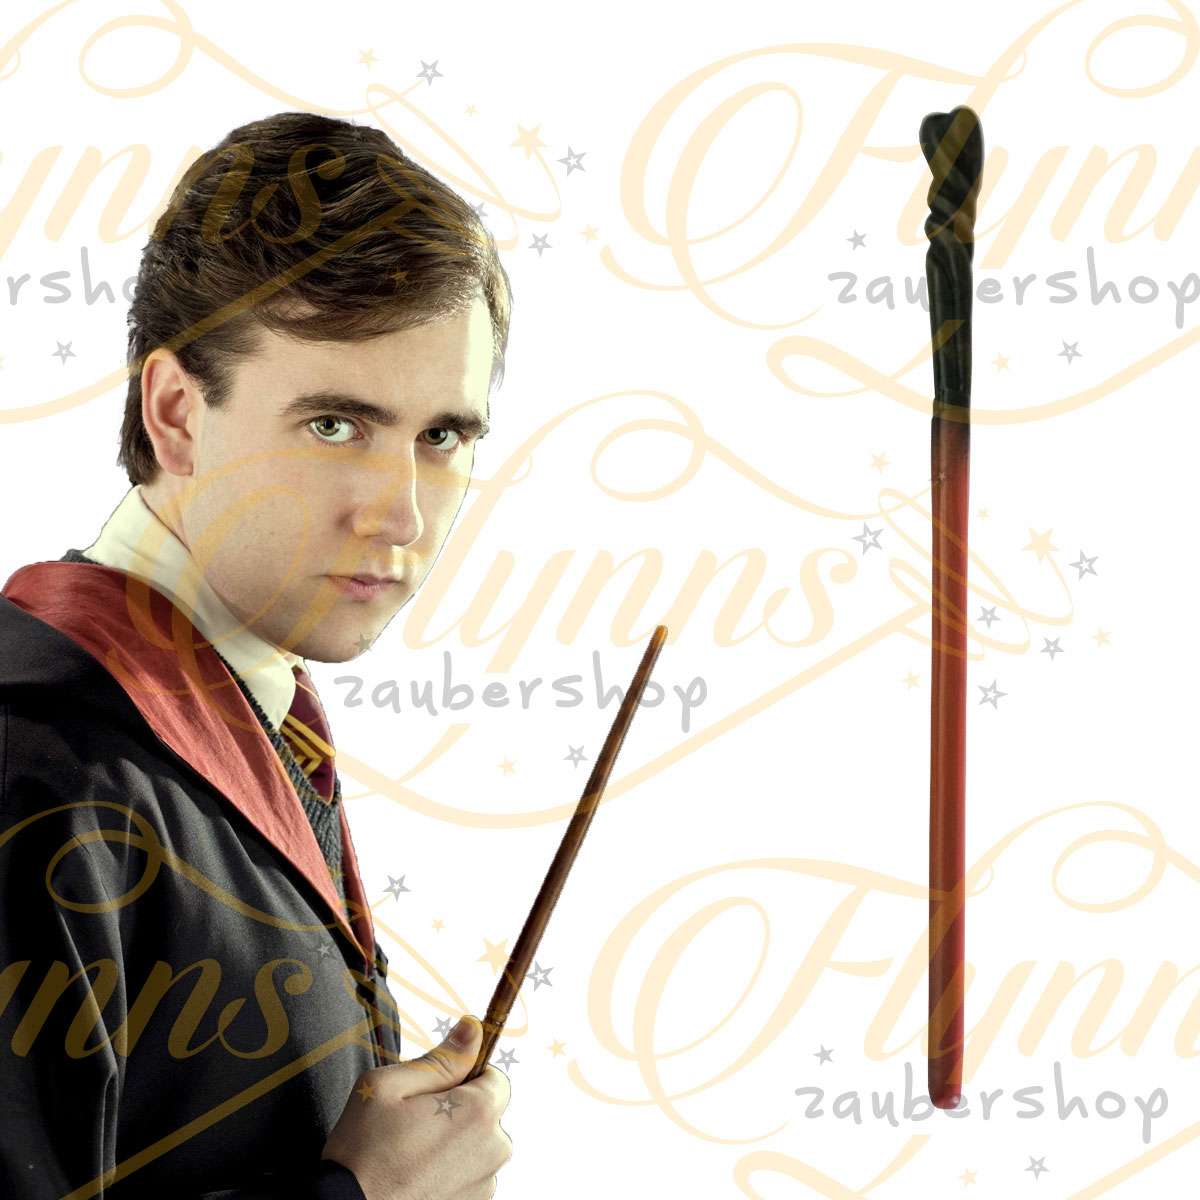 Neville Longbottom | Harry Potter | Flynns Zaubershop